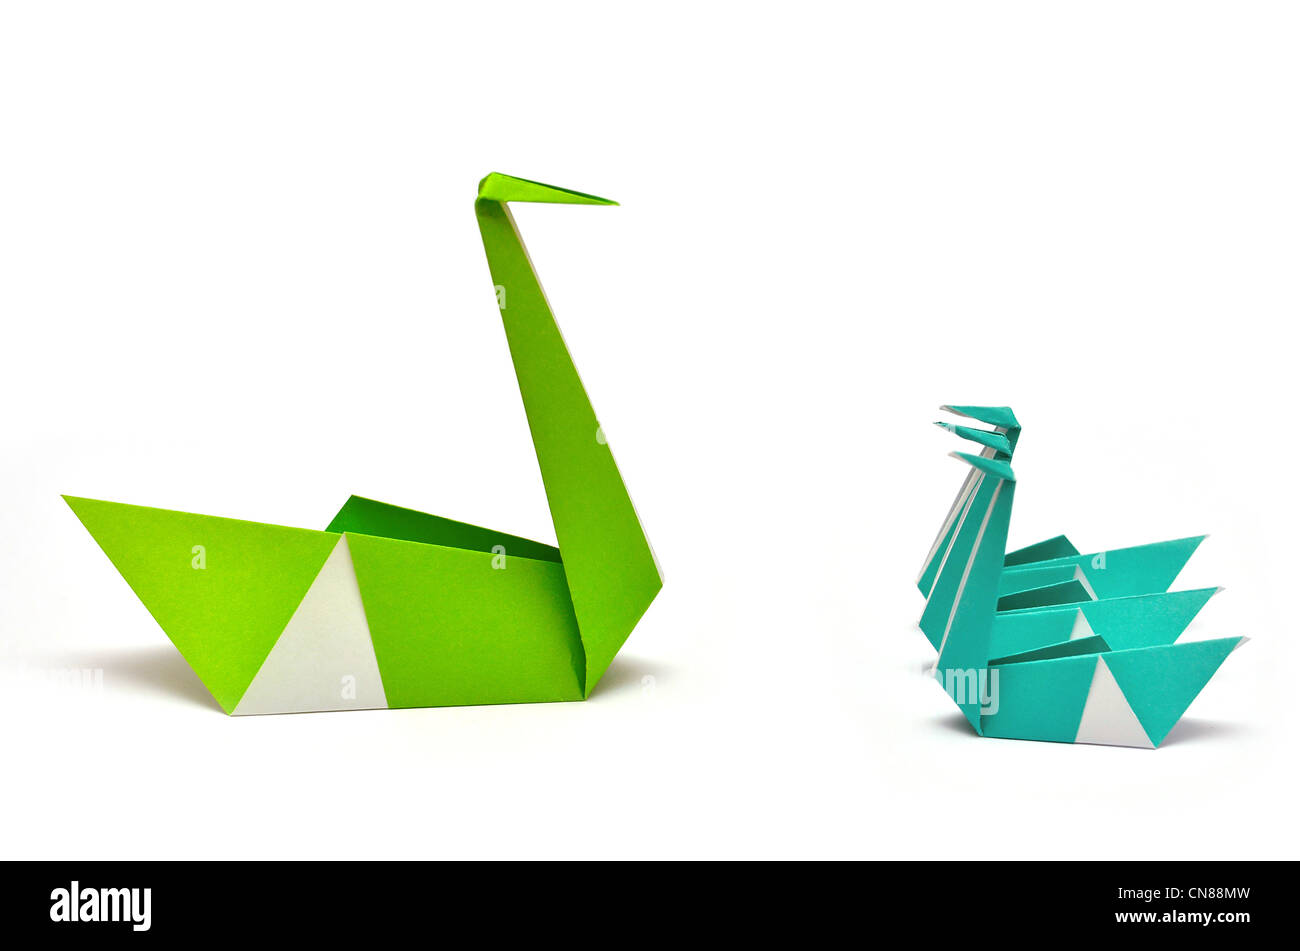 Origami Green and Blue Paper Swans meeting for a brief cut out white background Paper folding - Stock Image